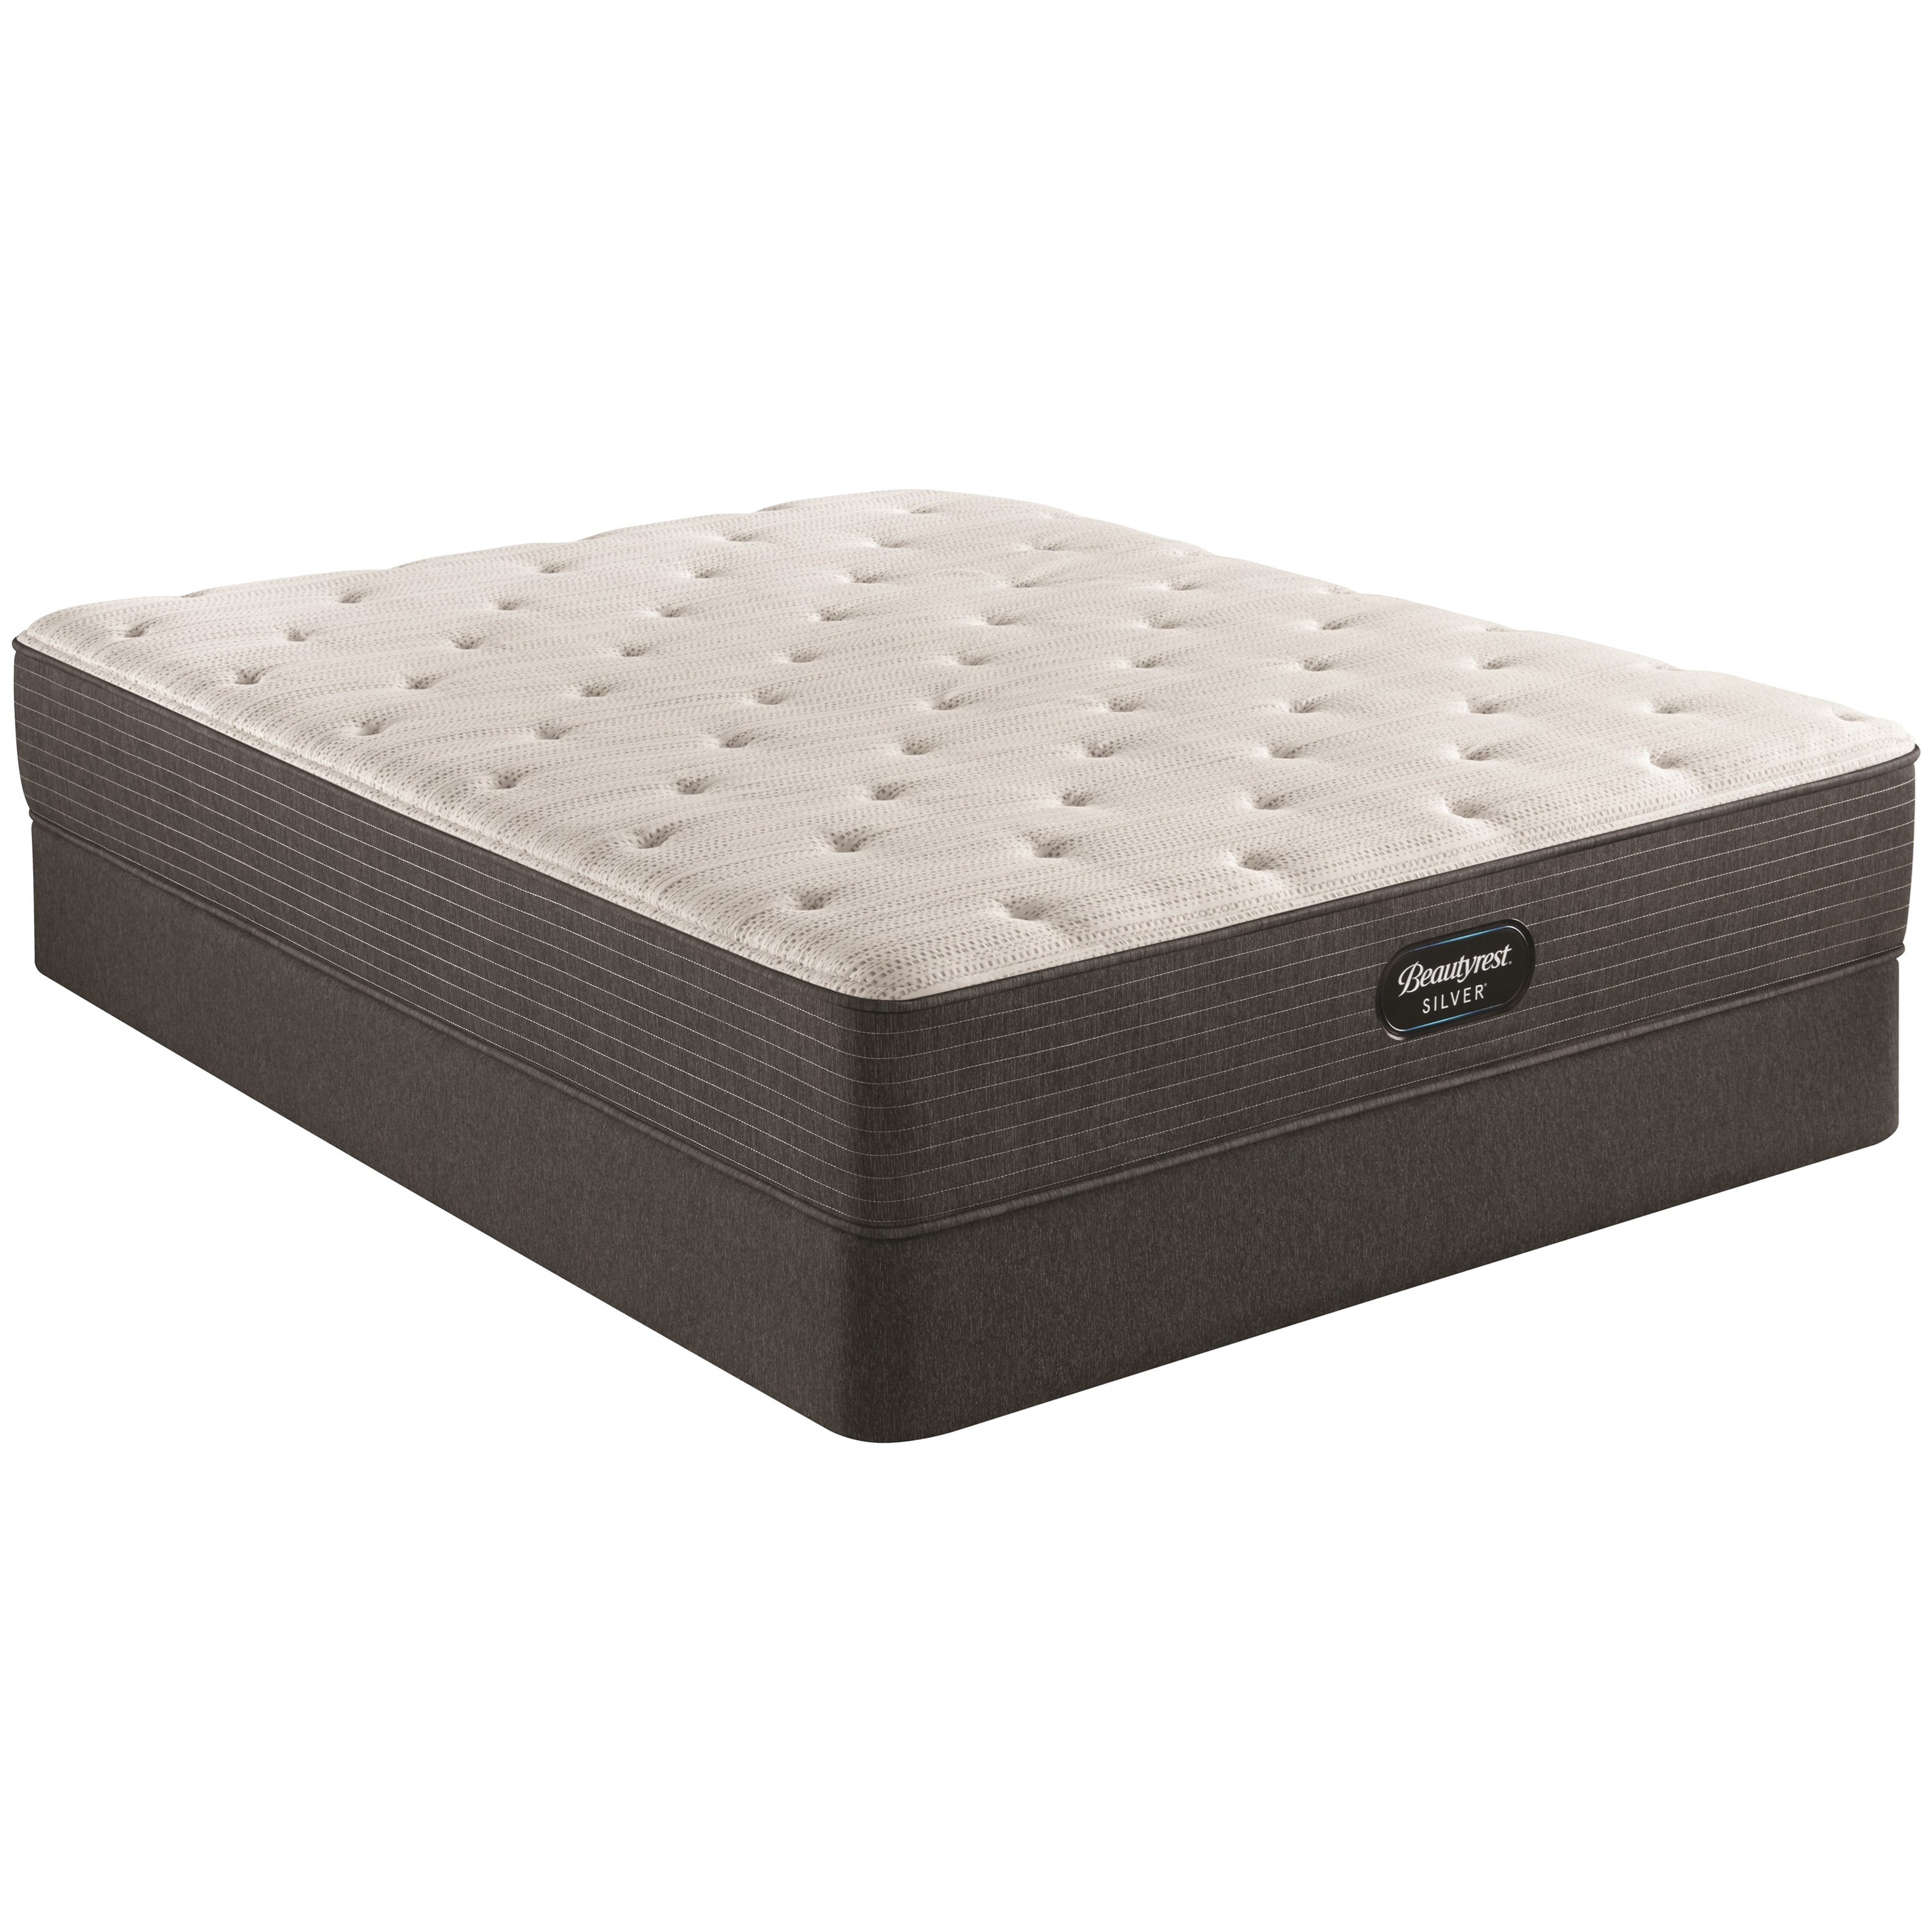 "BRS900 Plush Twin XL 12"" Pocketed Coil Mattress Set by Beautyrest at HomeWorld Furniture"